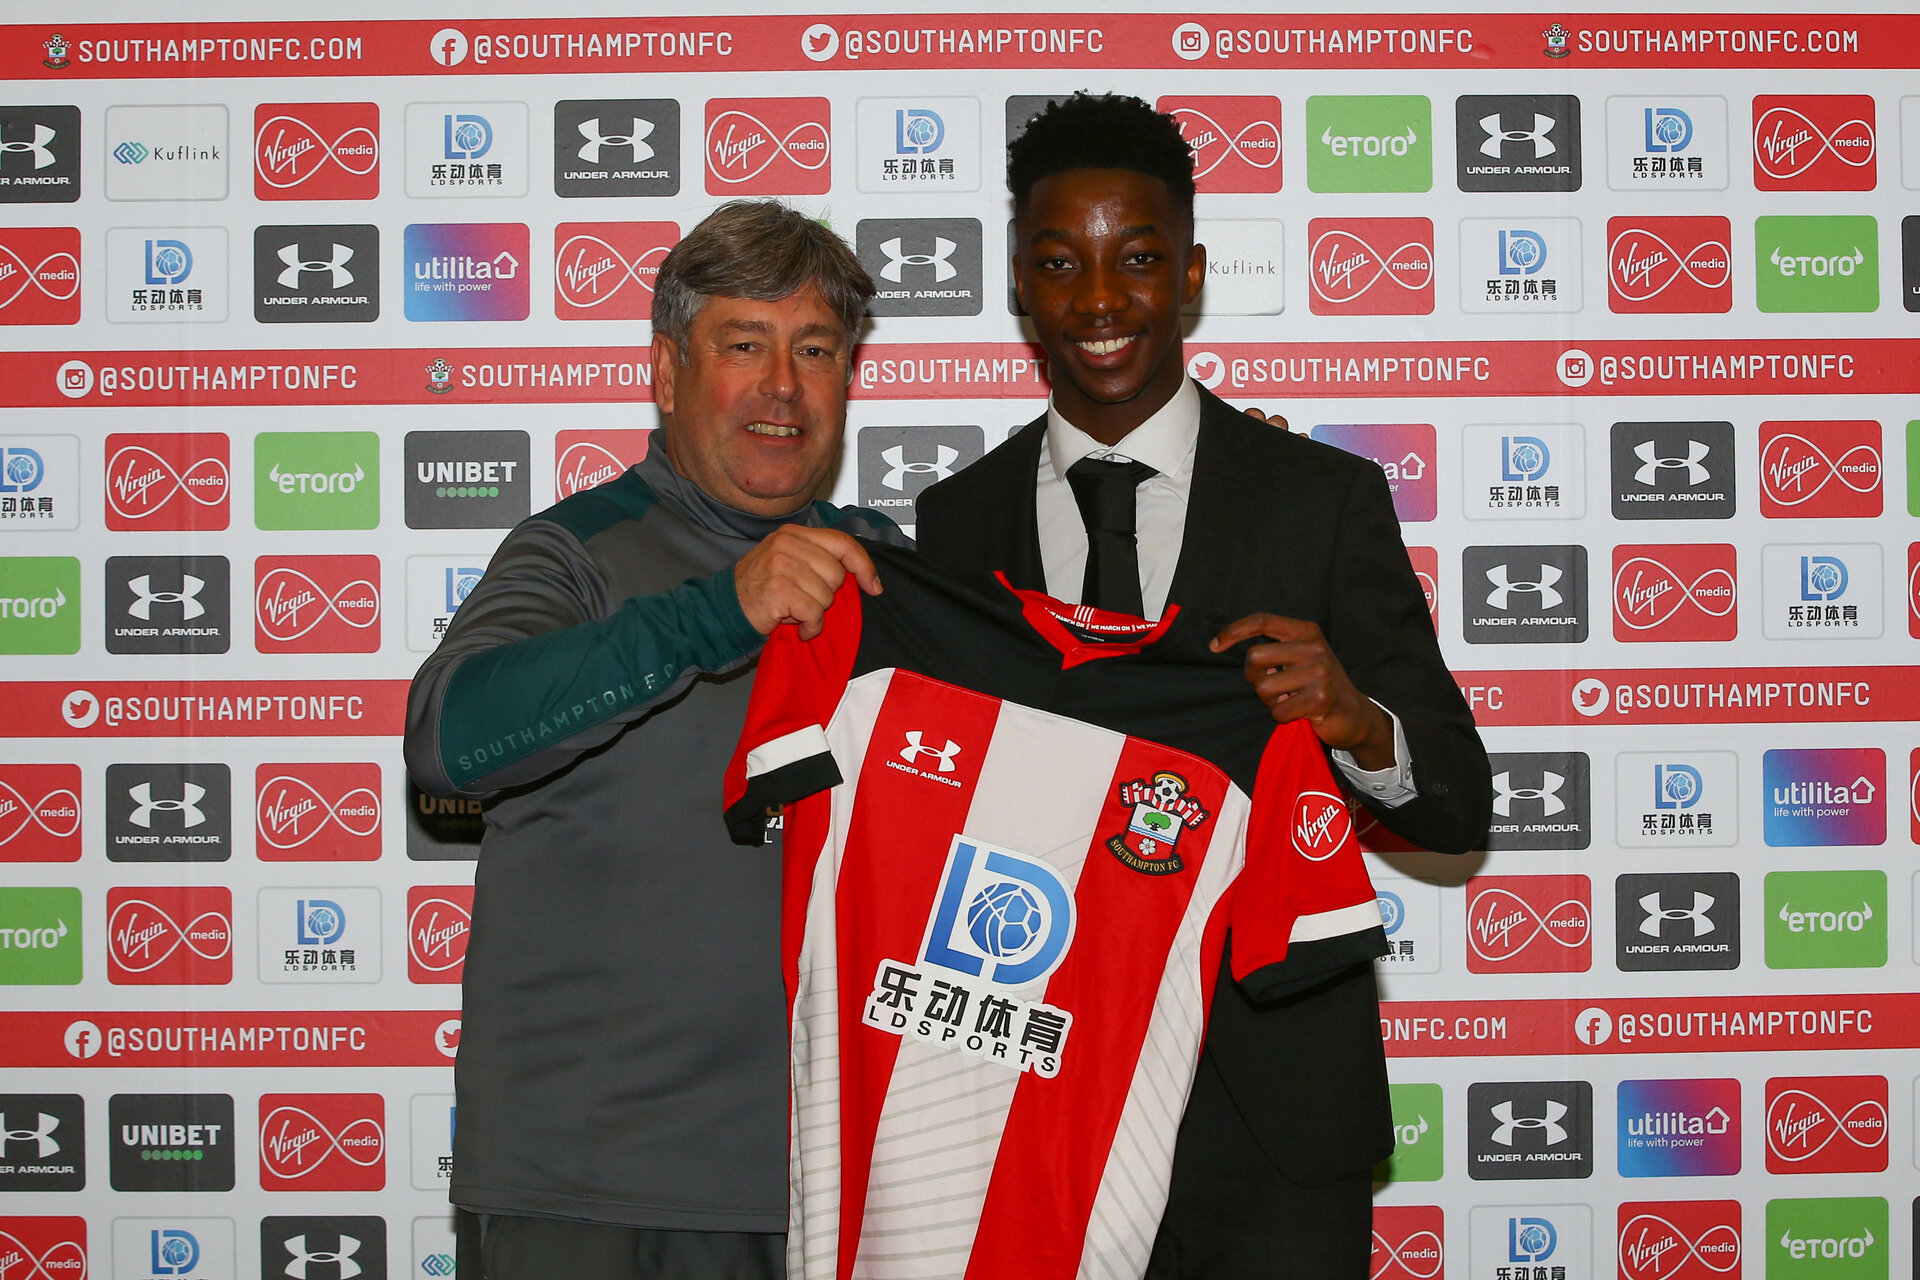 SOUTHAMPTON, ENGLAND - JANUARY 22: Kgaogelo Chauke signing his professional contract at Southampton FC at Staplewood Training Ground on January 22, 2020 in Southampton, United Kingdom. (Photo by Isabelle Field Southampton FC/Southampton FC via Getty Images)